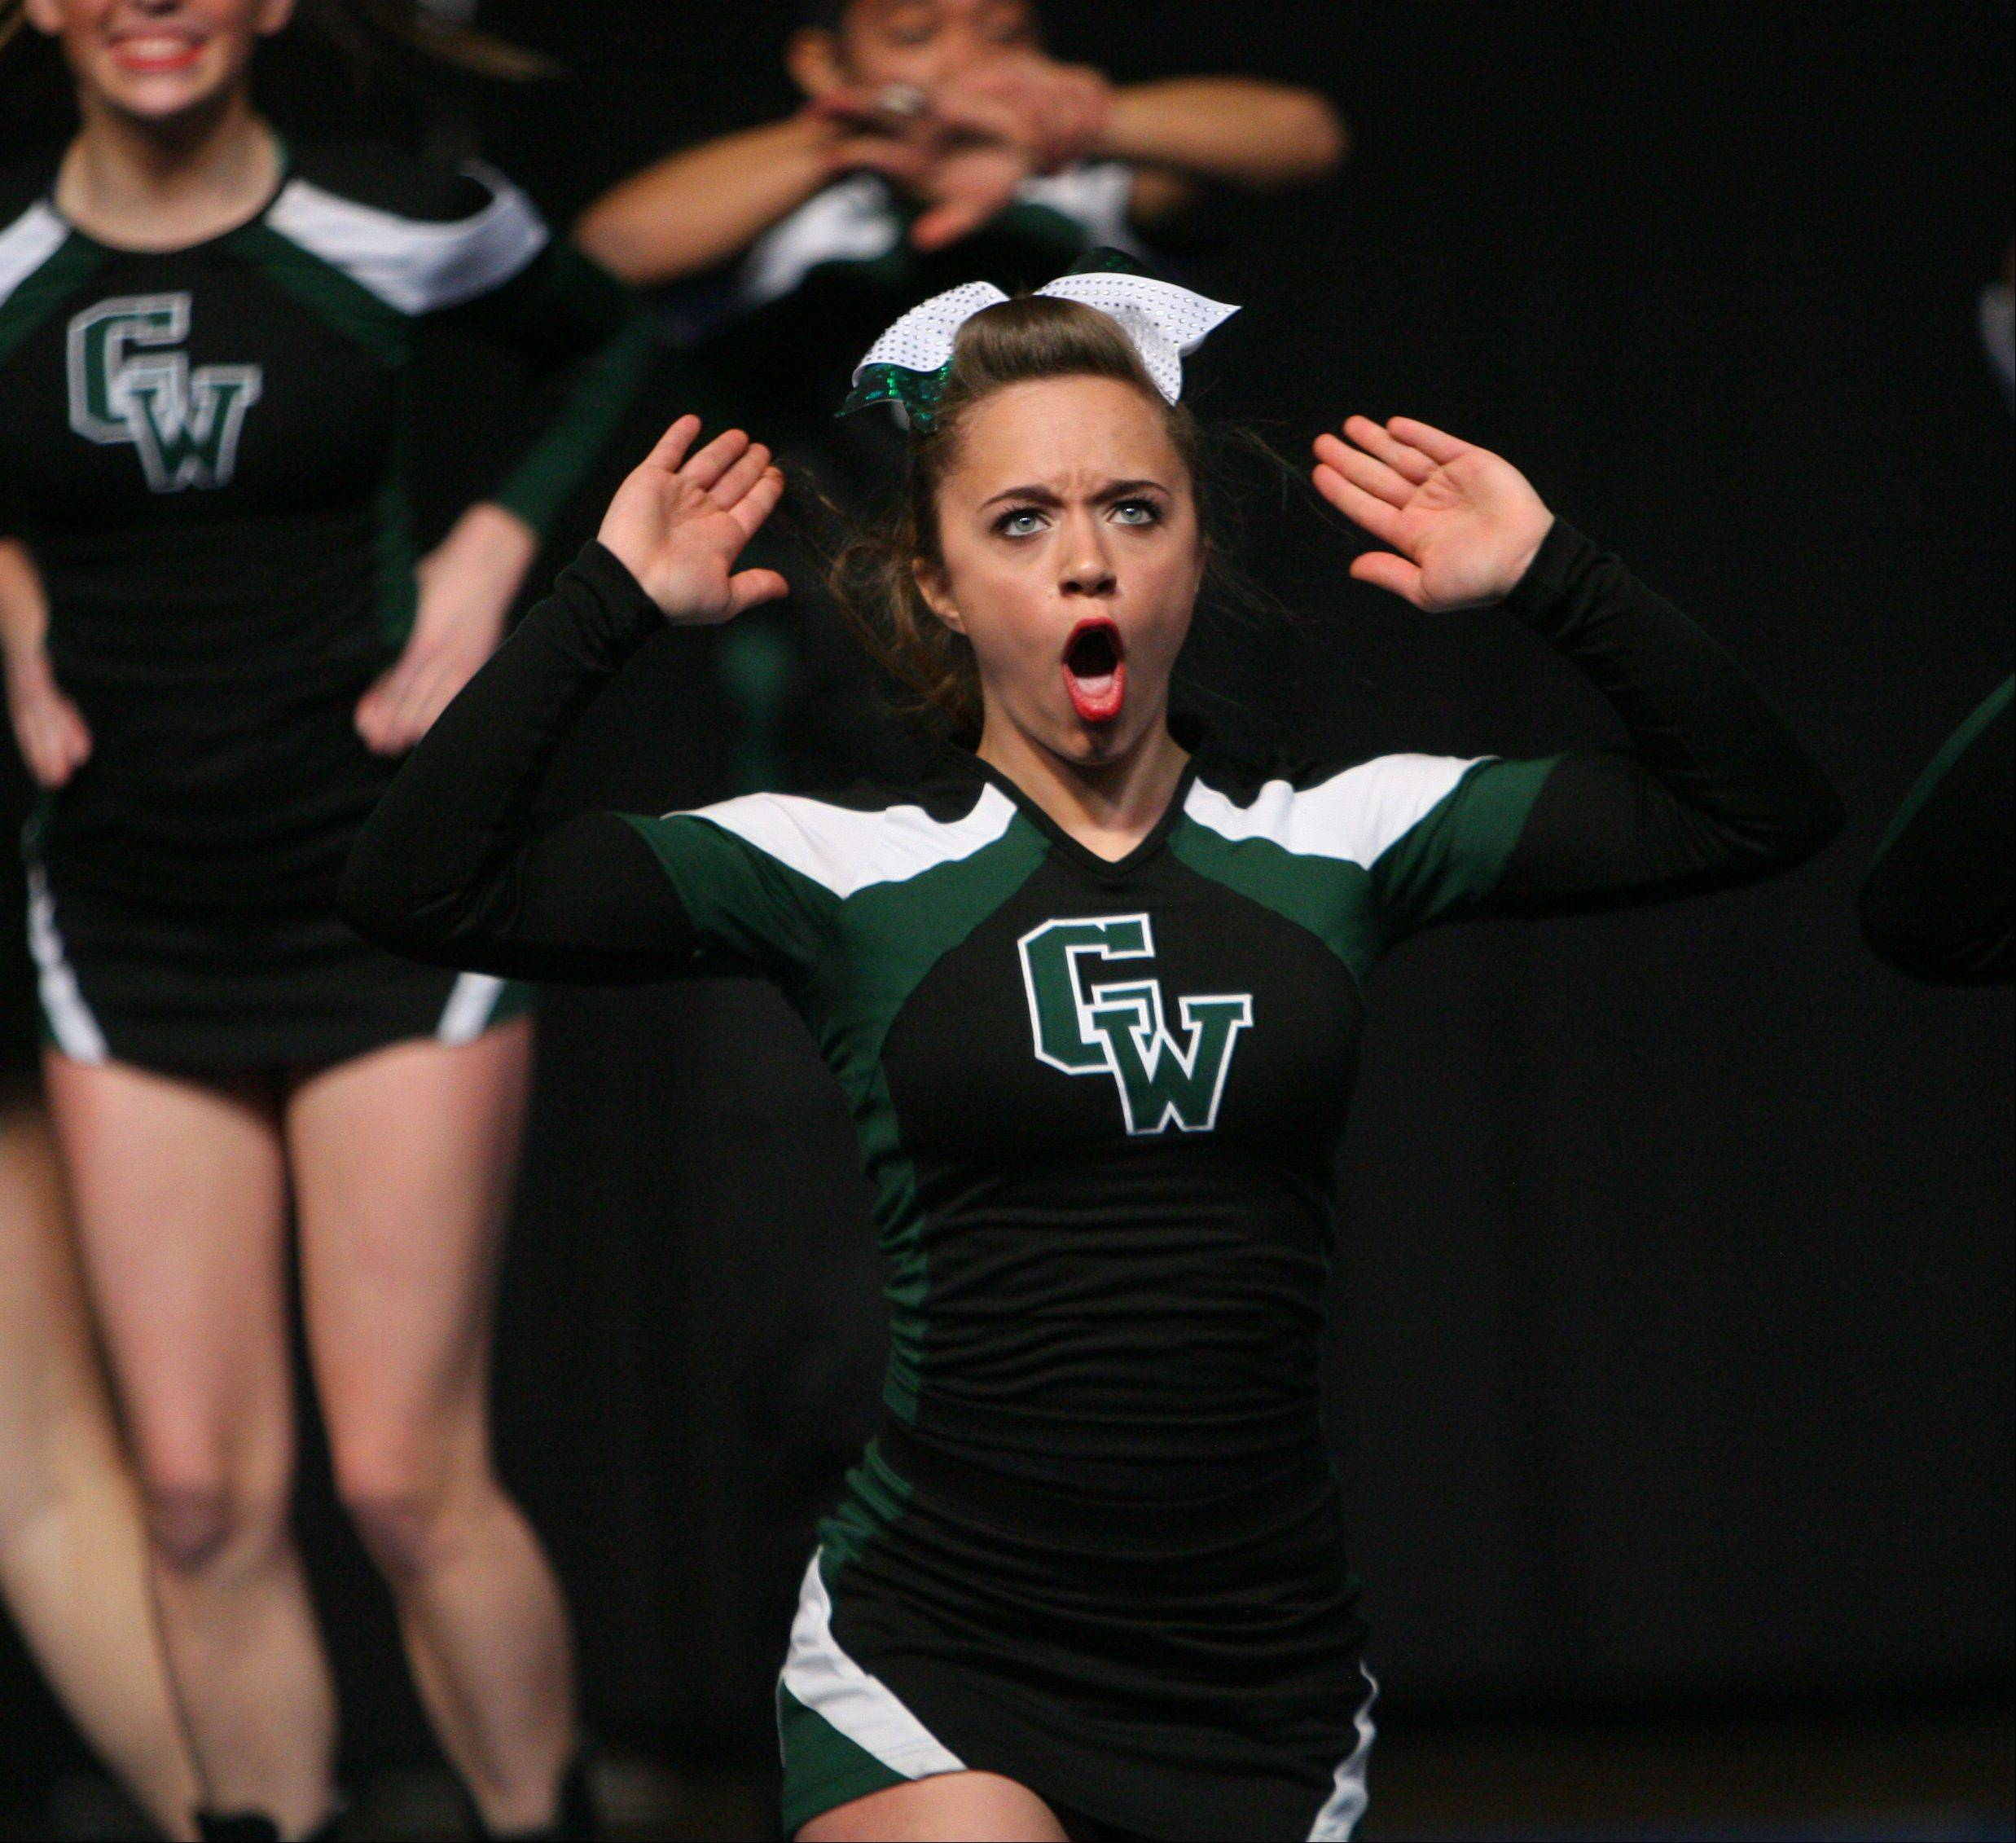 Glenbard West High School competes in the IHSA Competitive Cheerleading finals on Saturday at the U.S. Cellular Coliseum in Bloomington.